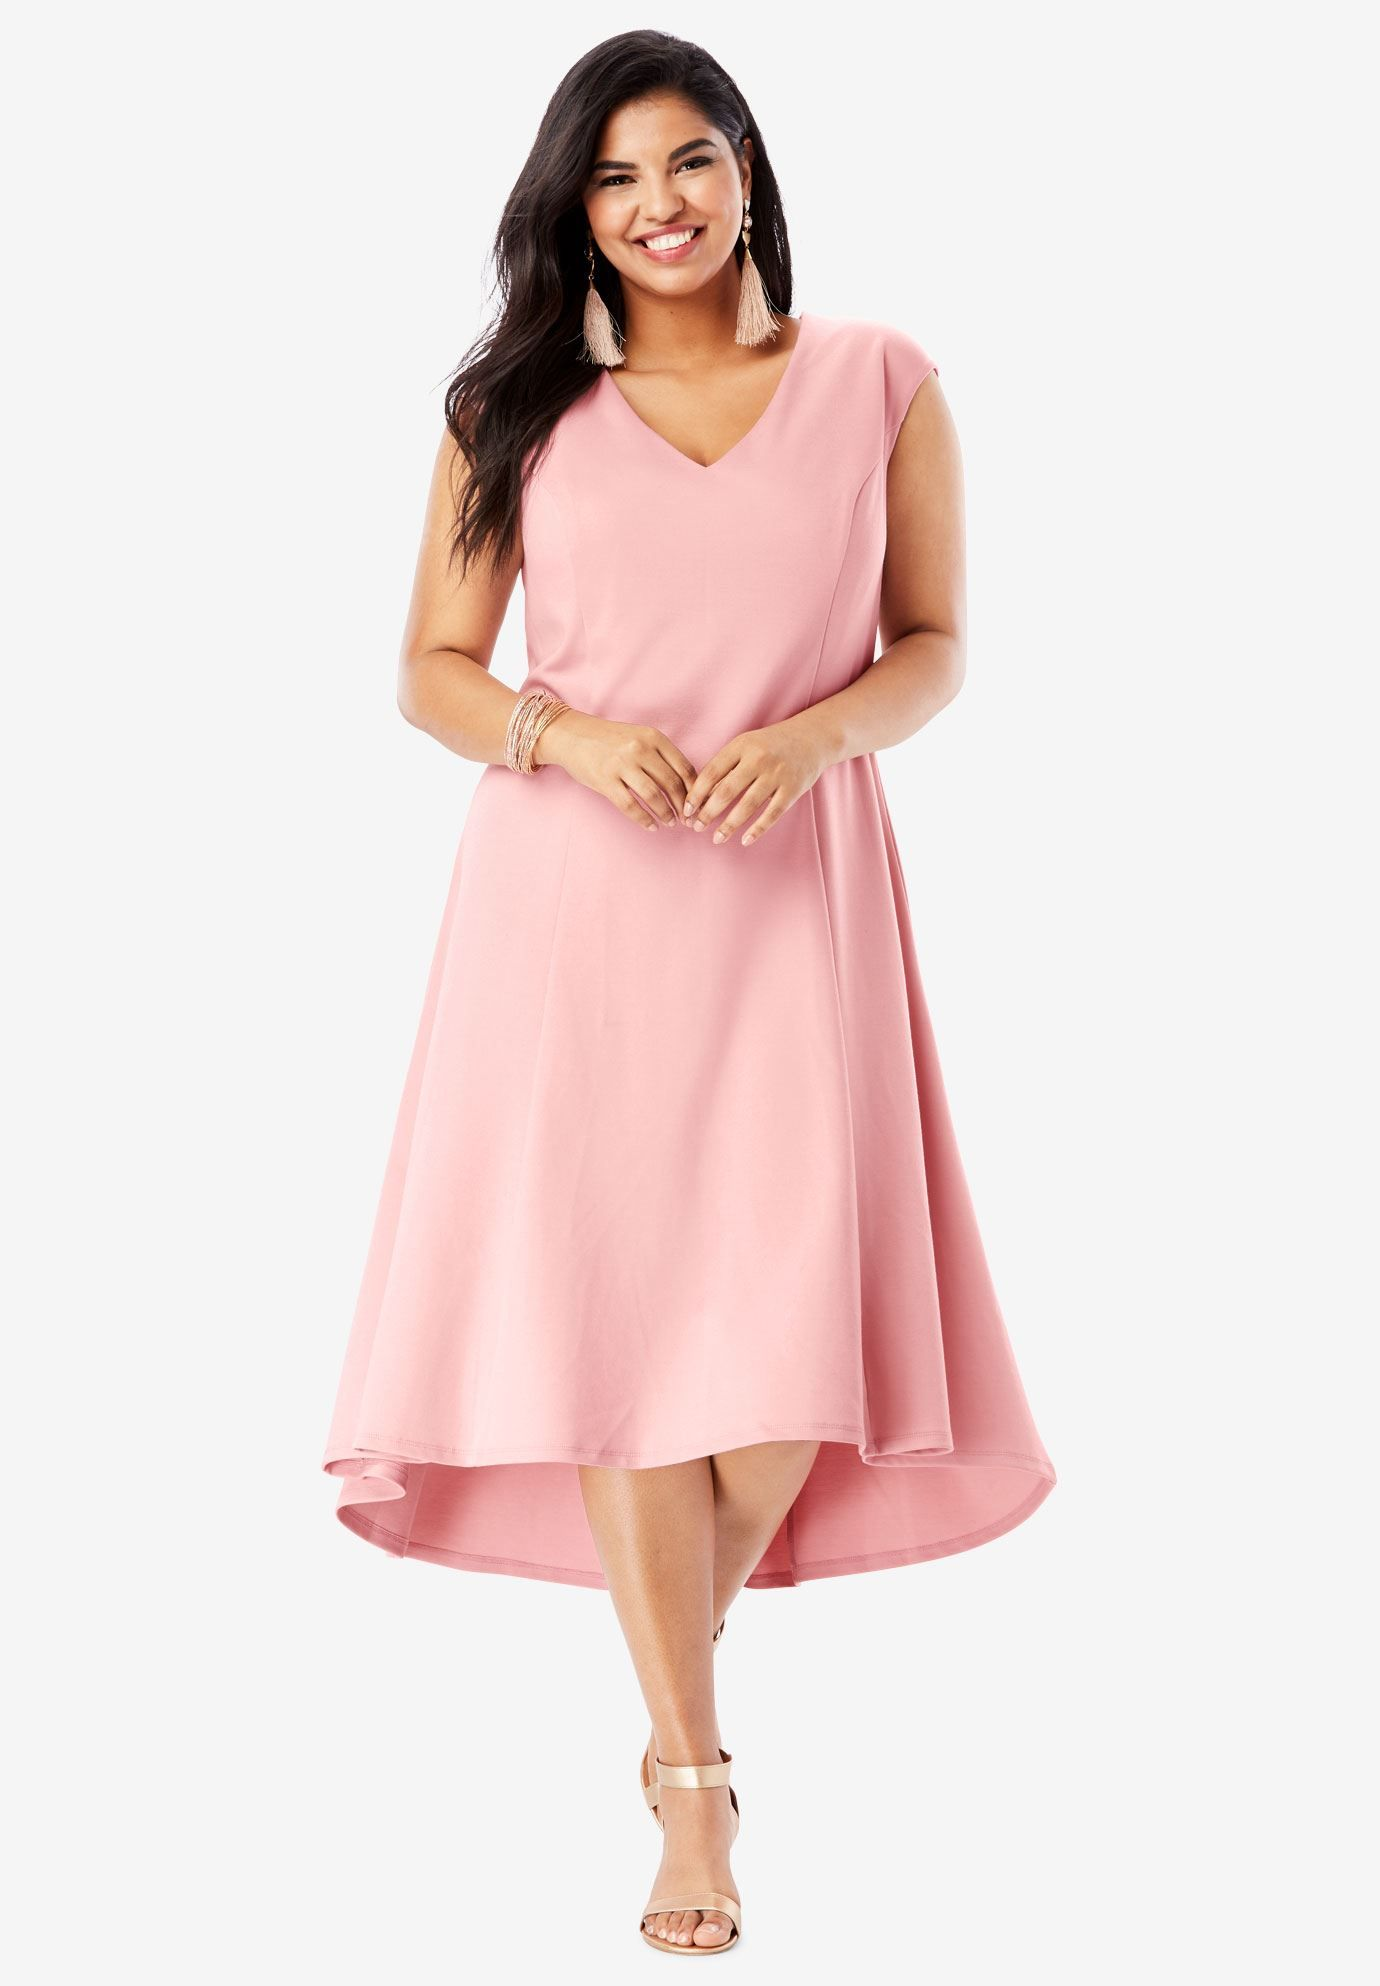 c72e449cccf8 Ultimate Ponte Fit & Flare Dress with High-Low Hem, SOFT BLUSH ...